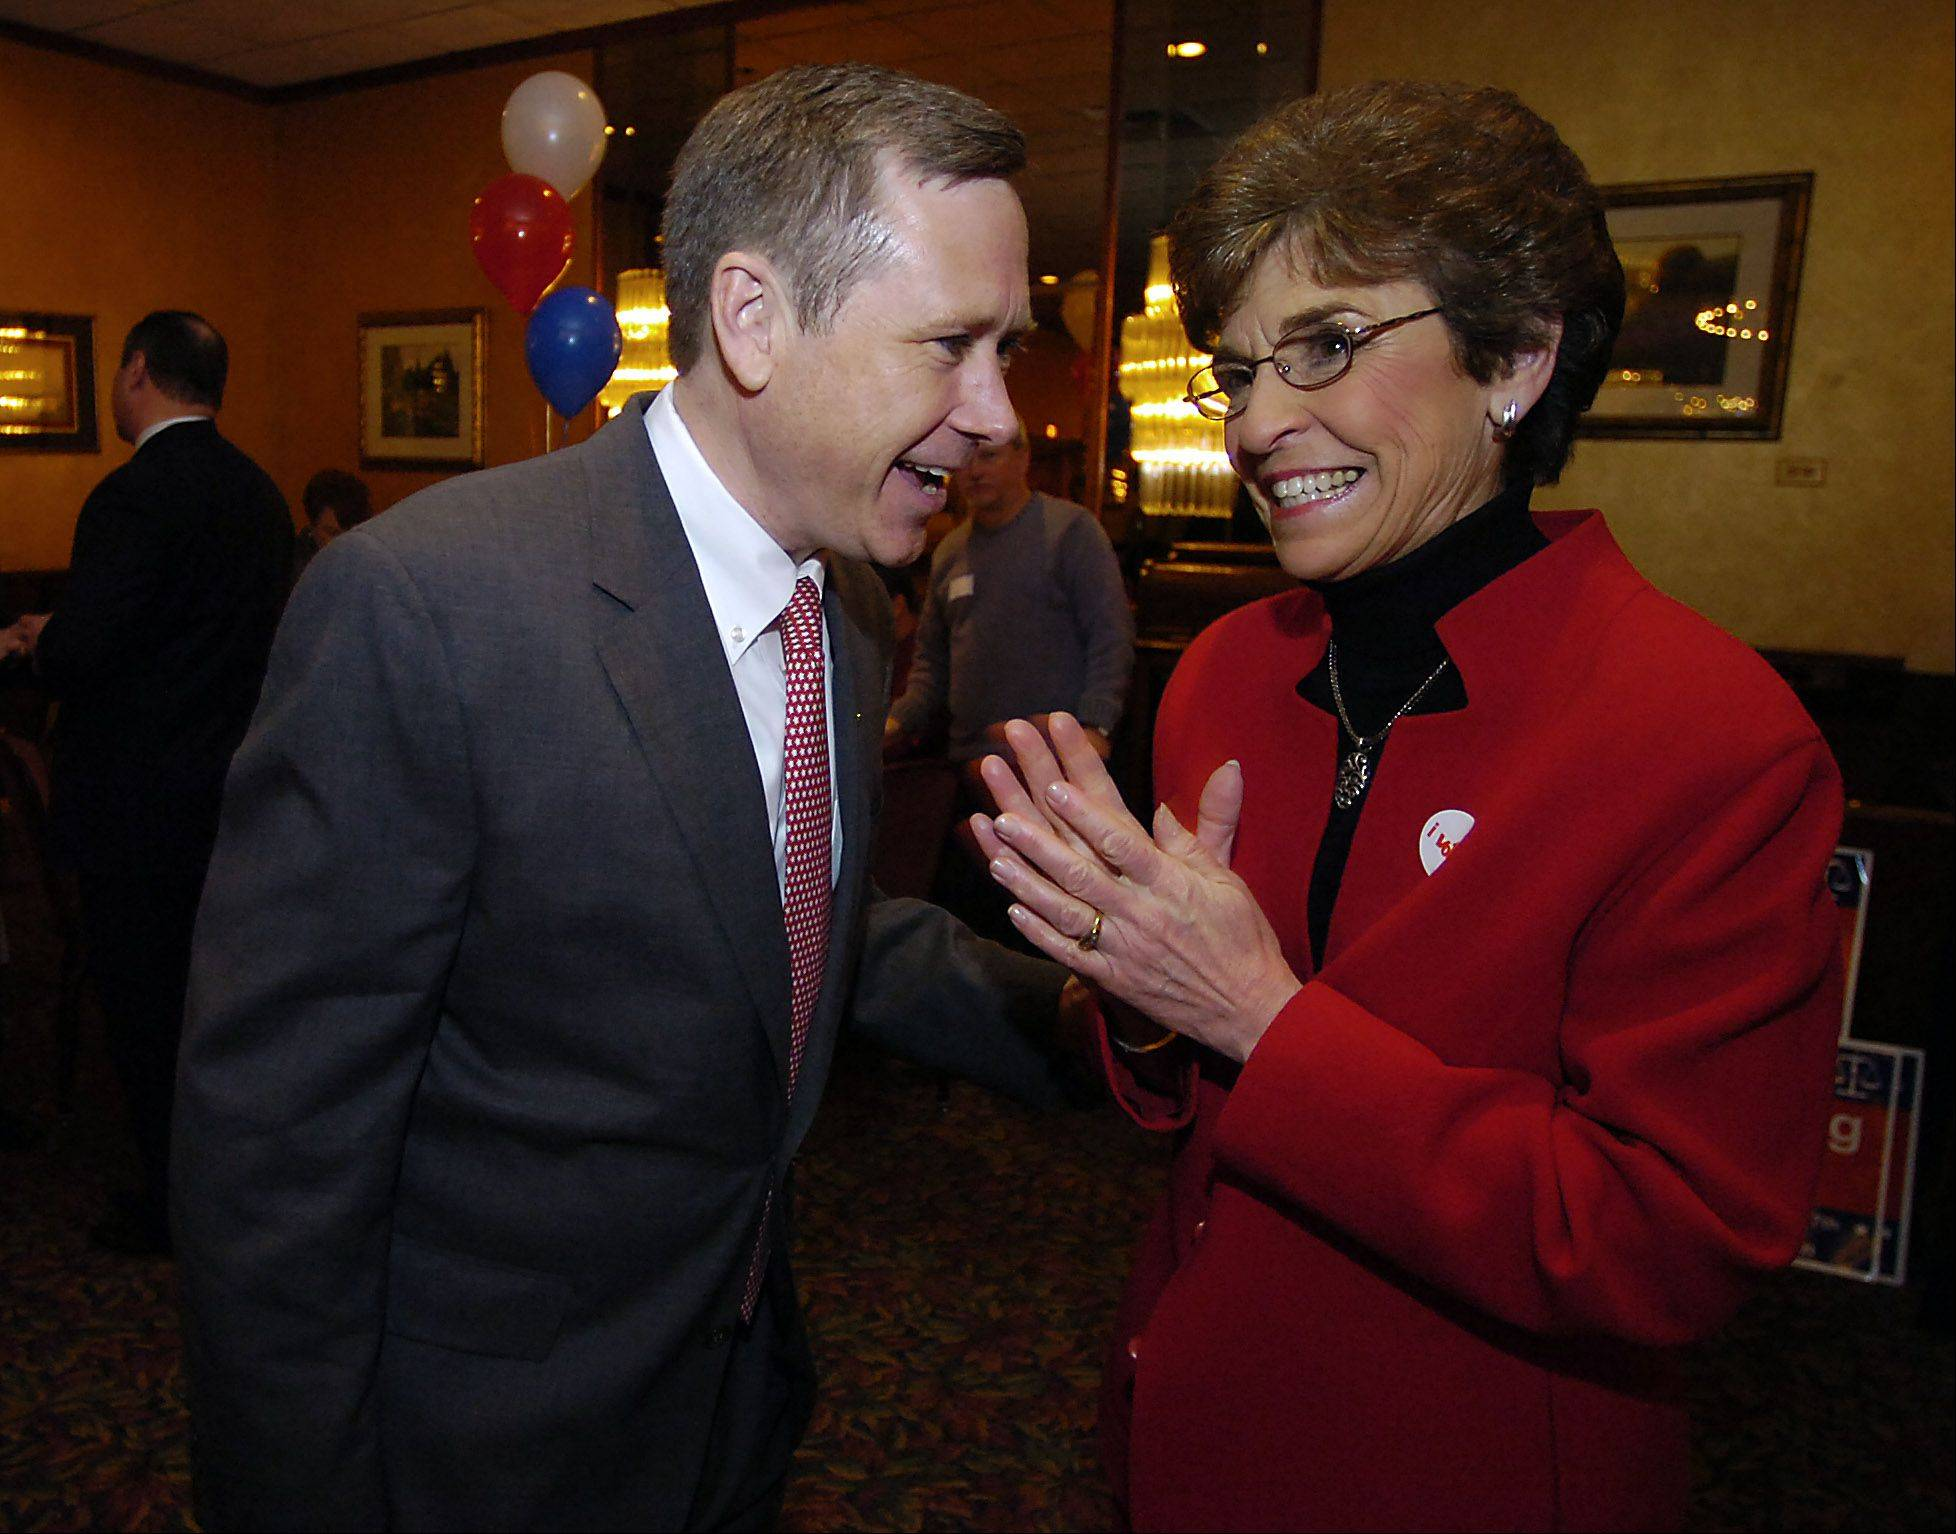 Congressman Mark Kirk chats with Mayor Arlene Mulder at her final election party on April 7, 2009 at the Wellington Restaurant in Arlington Heights.